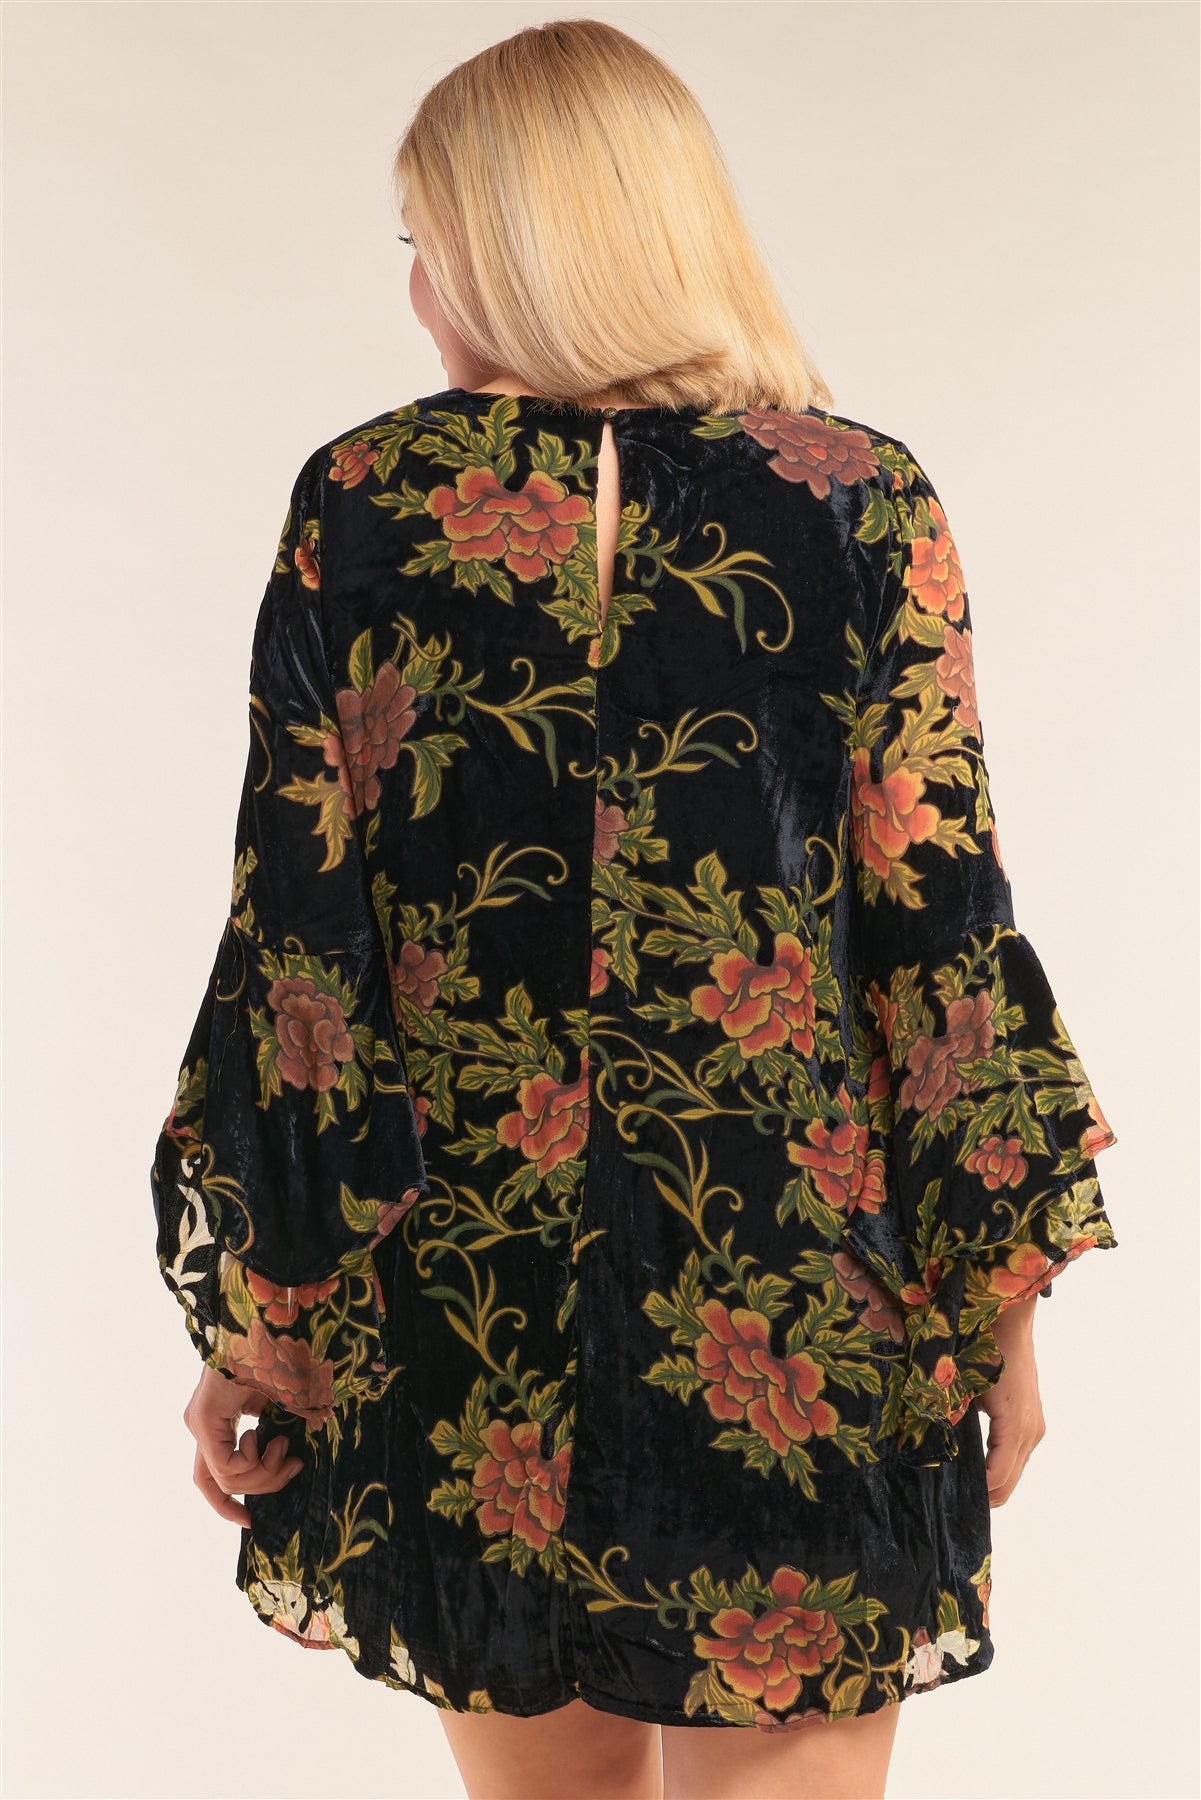 Plus Size Velvet Floral Pattern Long Angel Sleeve Round Neck Relaxed Fit Mini Dress